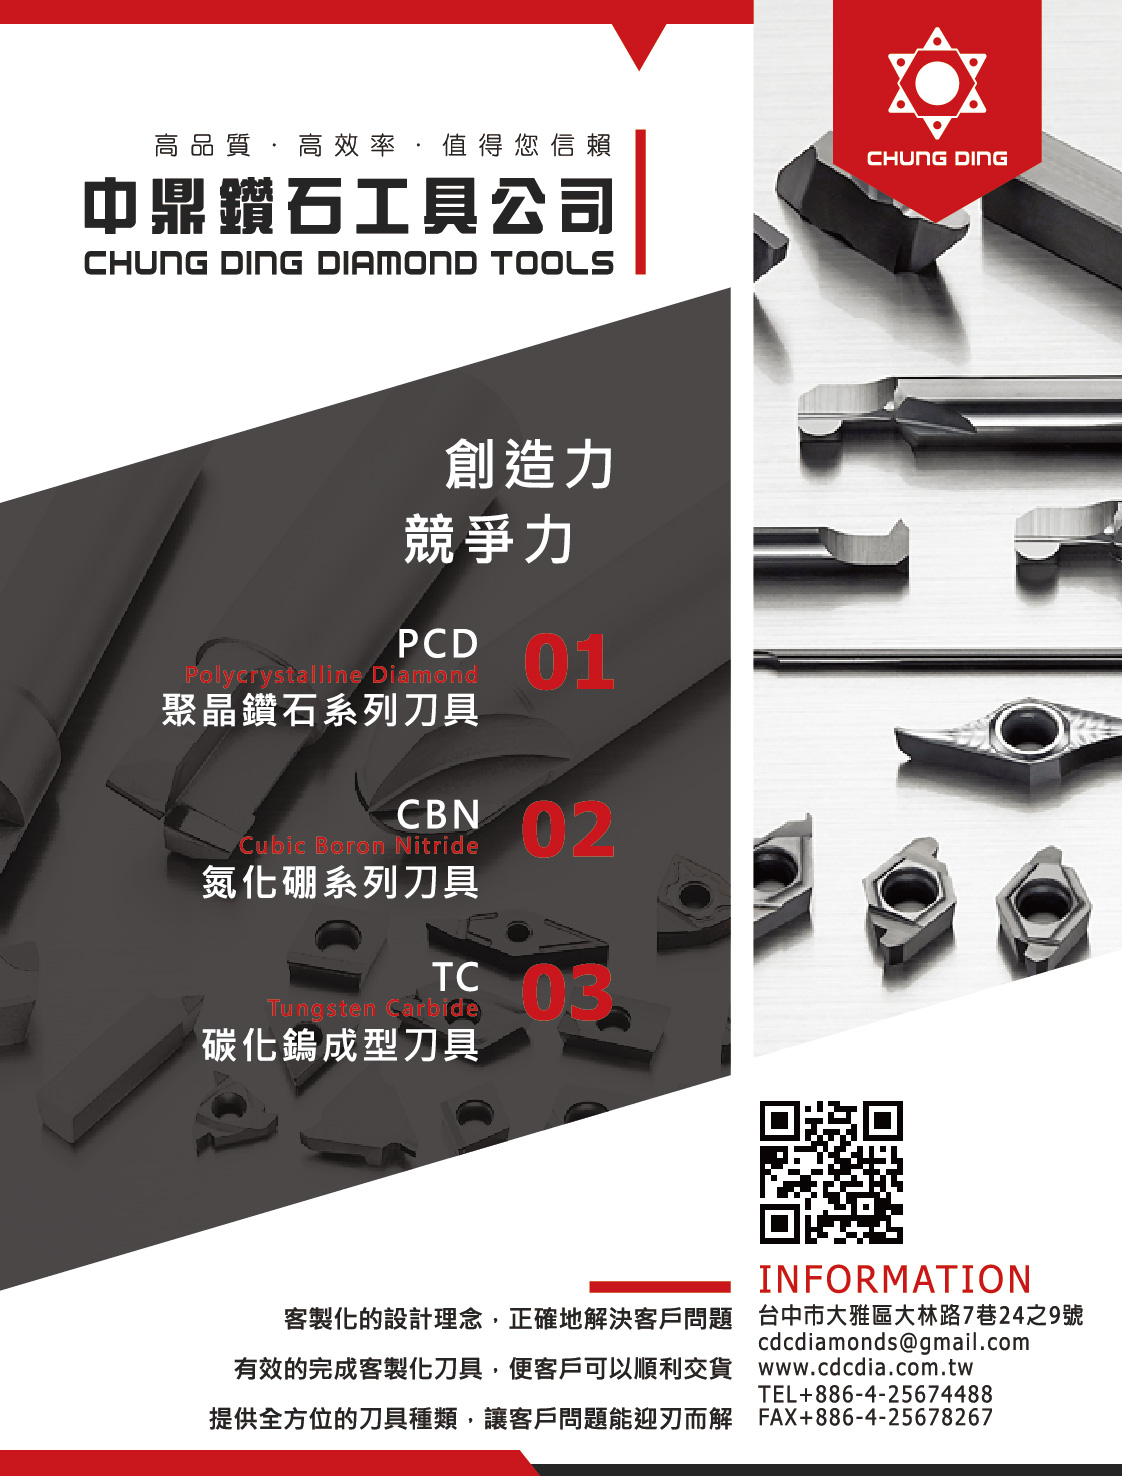 CHUNG DING DIAMOND TOOLS CO., LTD.